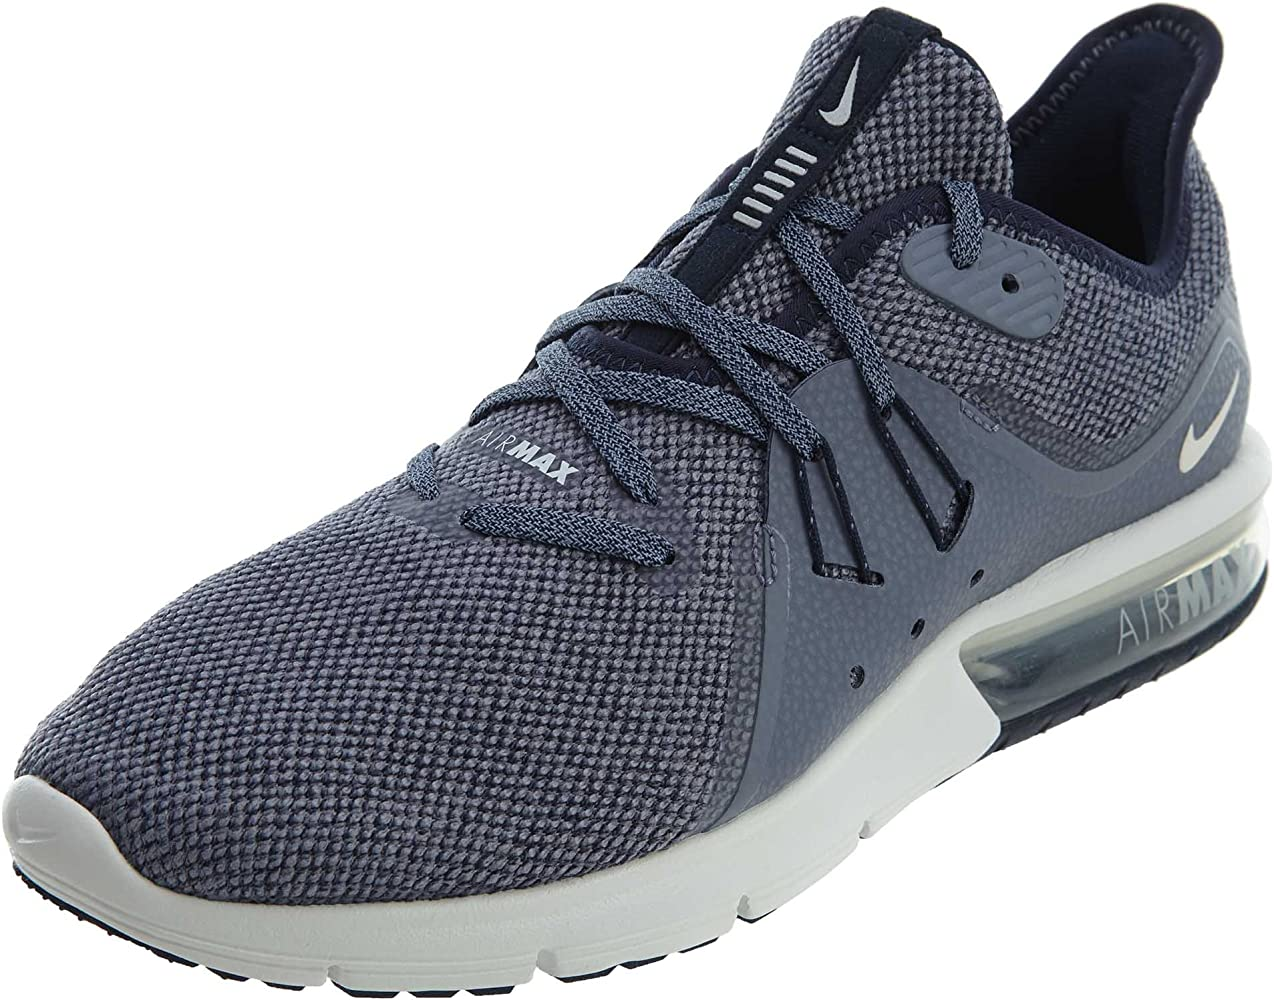 Mujer hermosa peligroso canal  Amazon.com | Nike Air Max Sequent 3 Men's Running (7, Obsidian/Summit  White) | Road Running